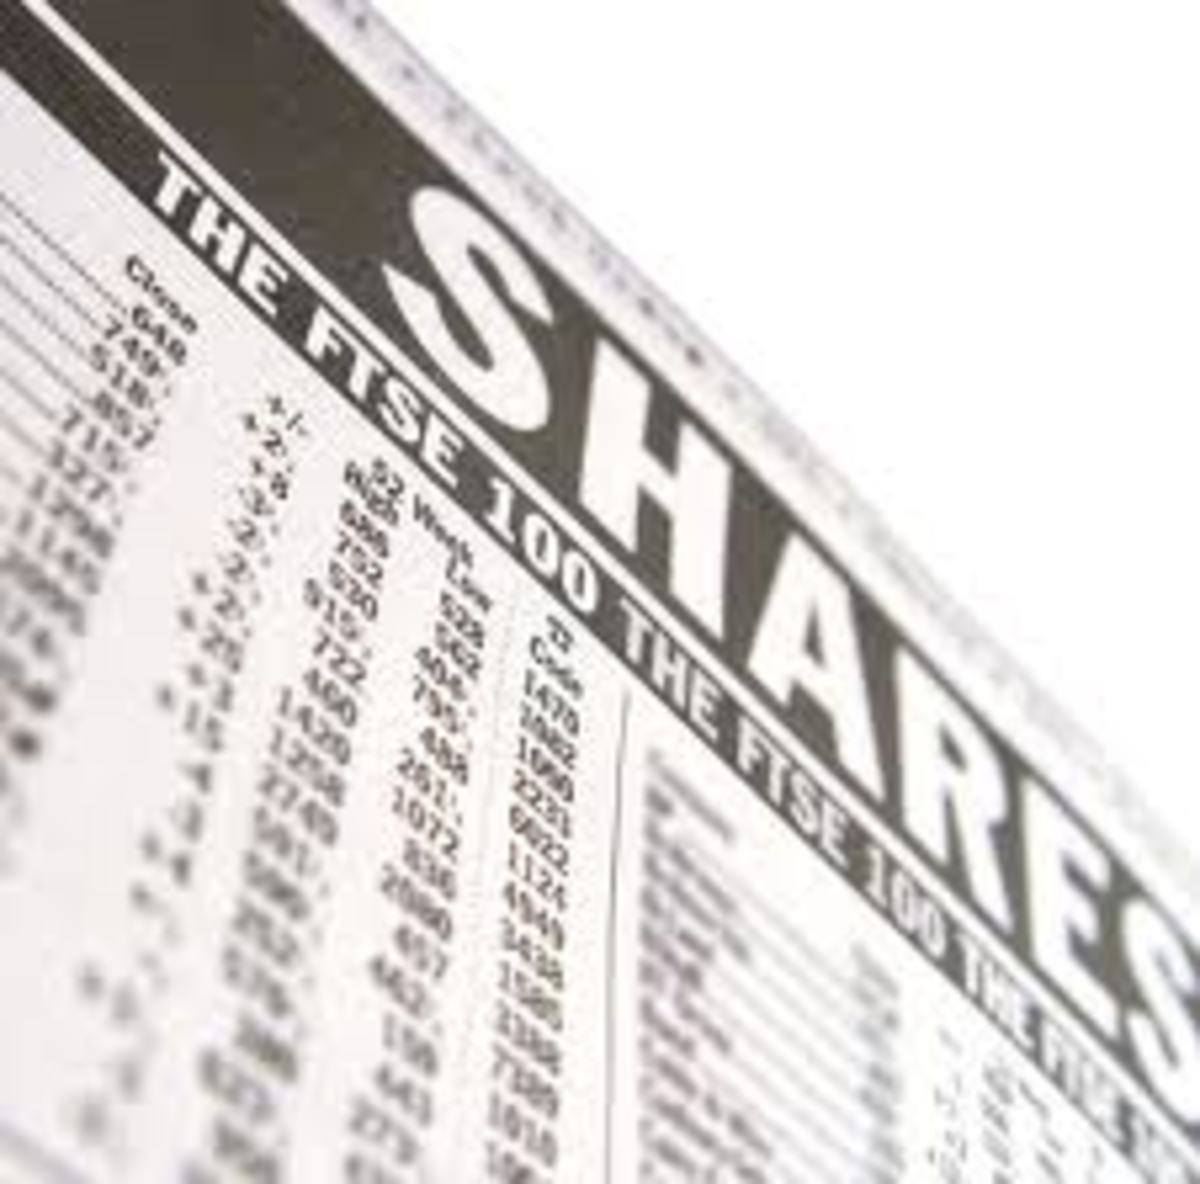 Advantages and Disadvantages of investing in shares